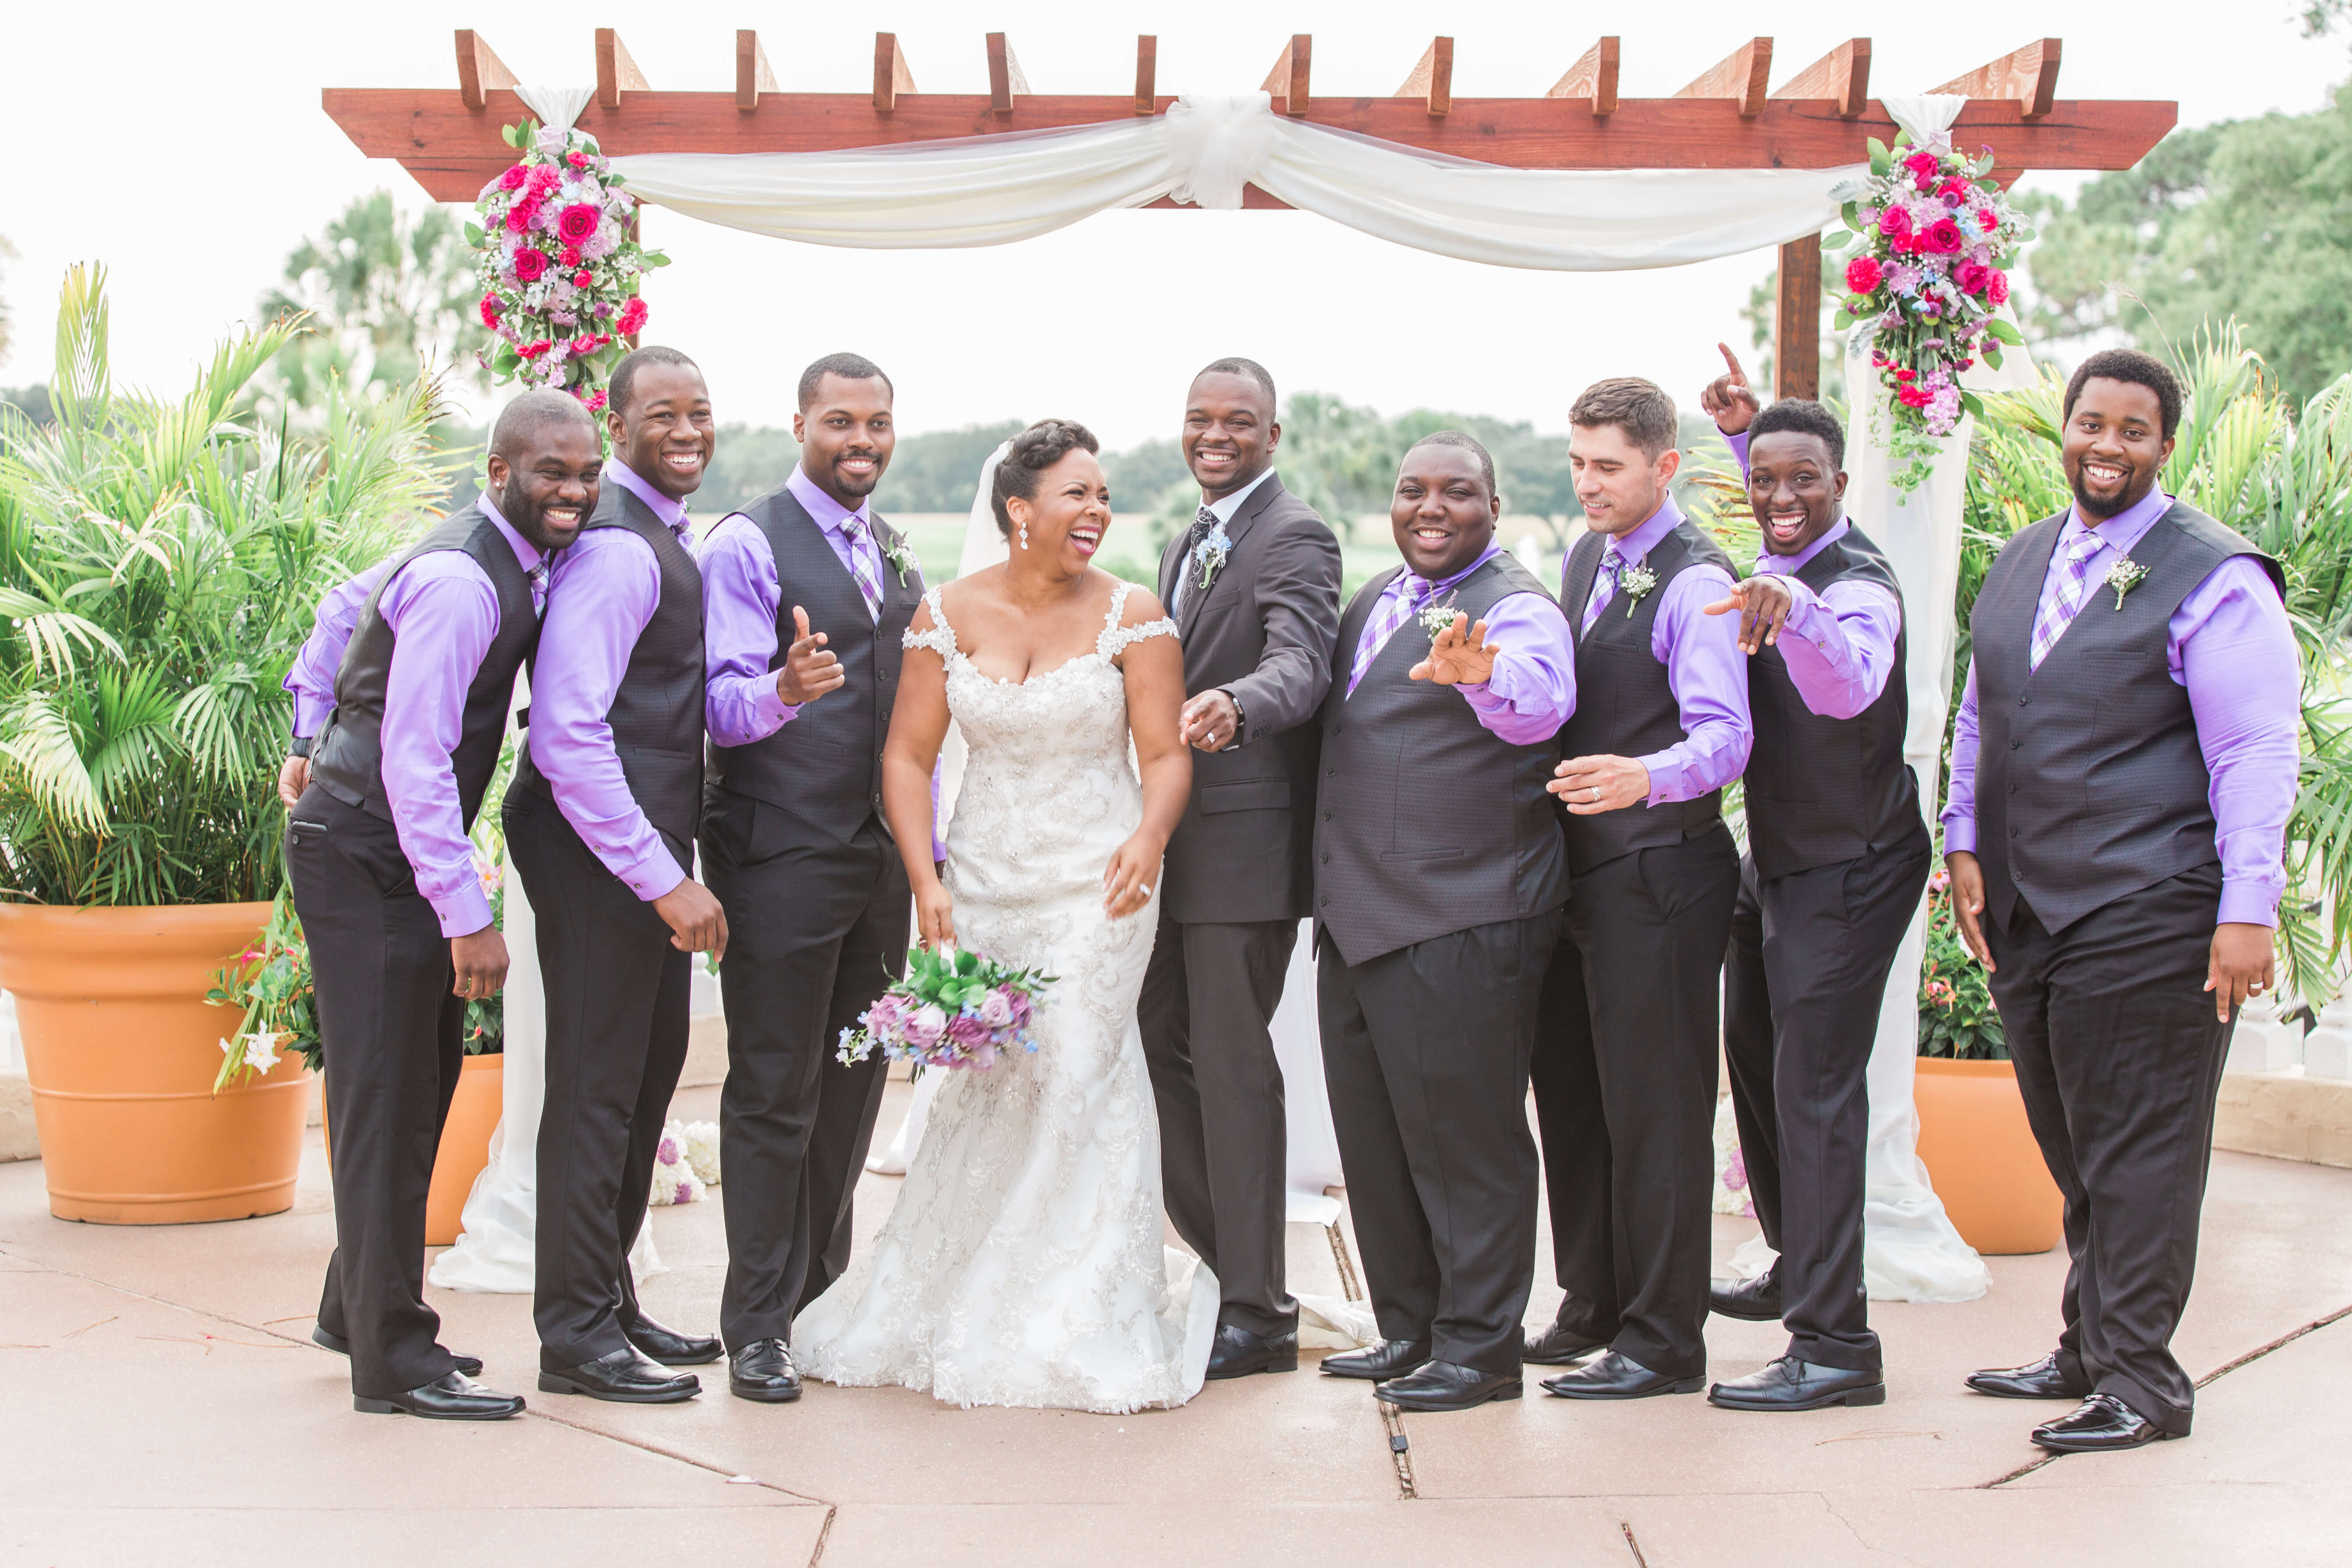 Groomsmen in purple shirts with bride and groom standing in front of arch at Plaza de la Fontana after garden ceremony